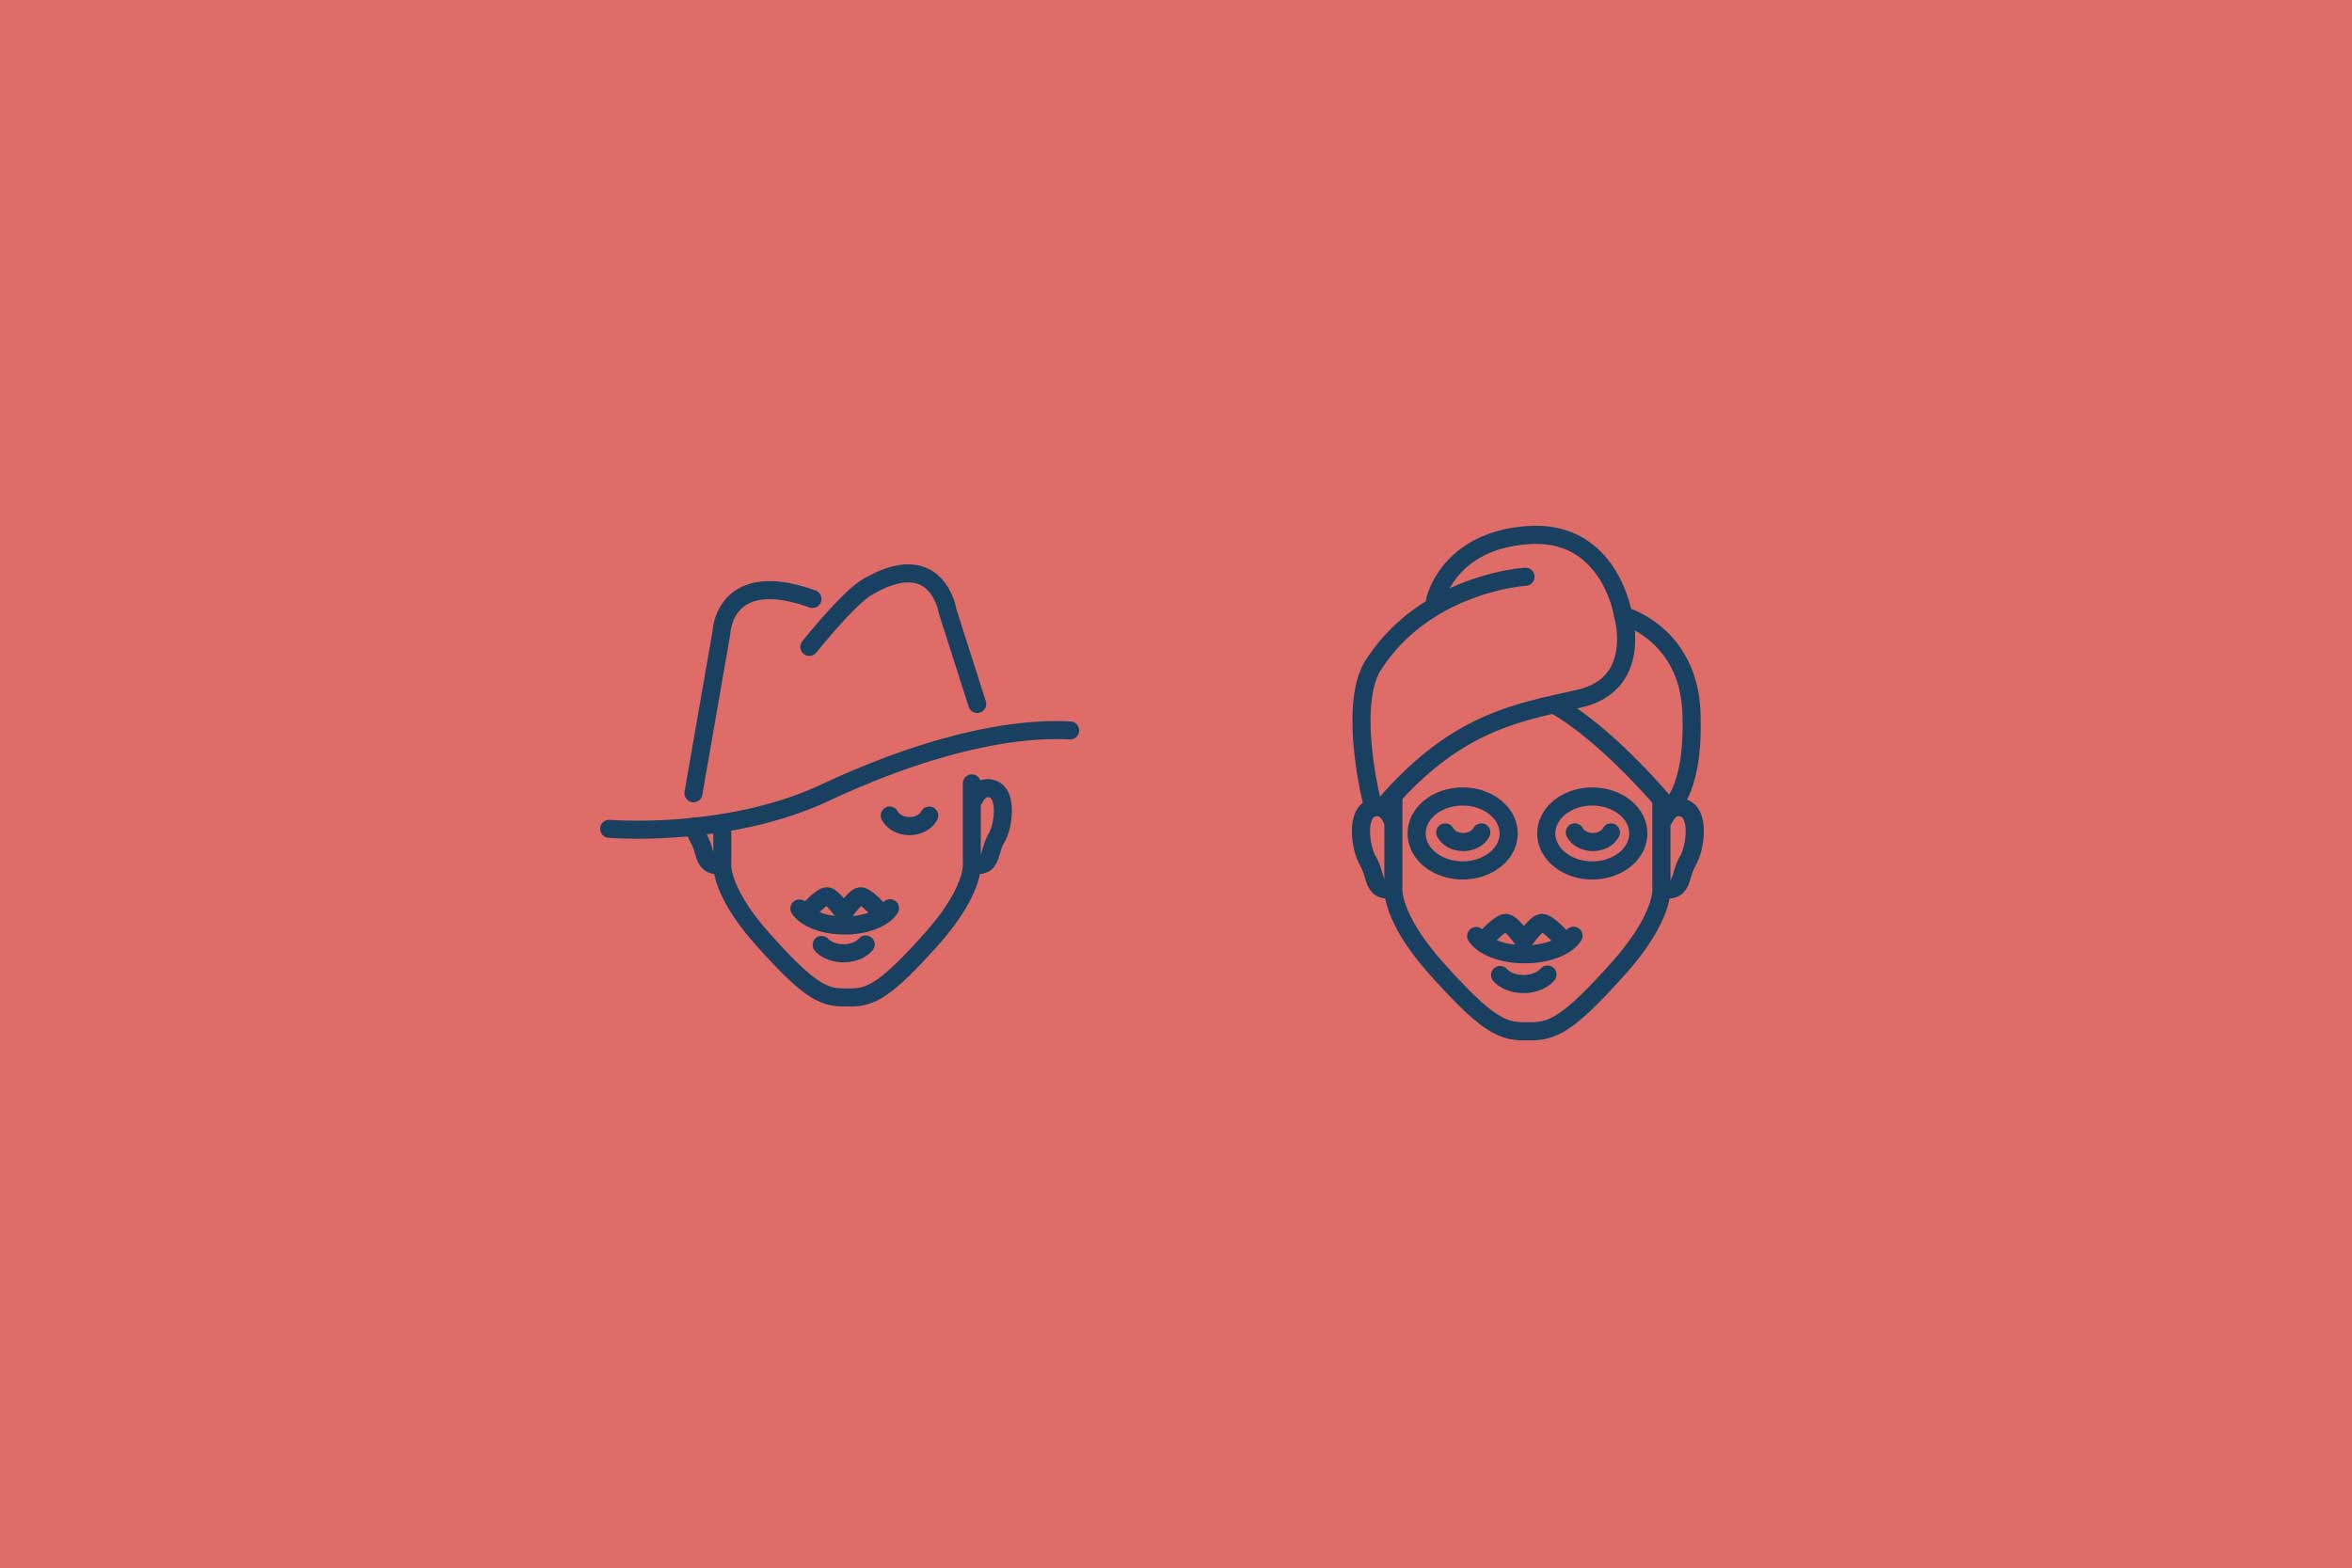 Style and Skin Type icons designed for the Wheesearch brand that is used across all channels.